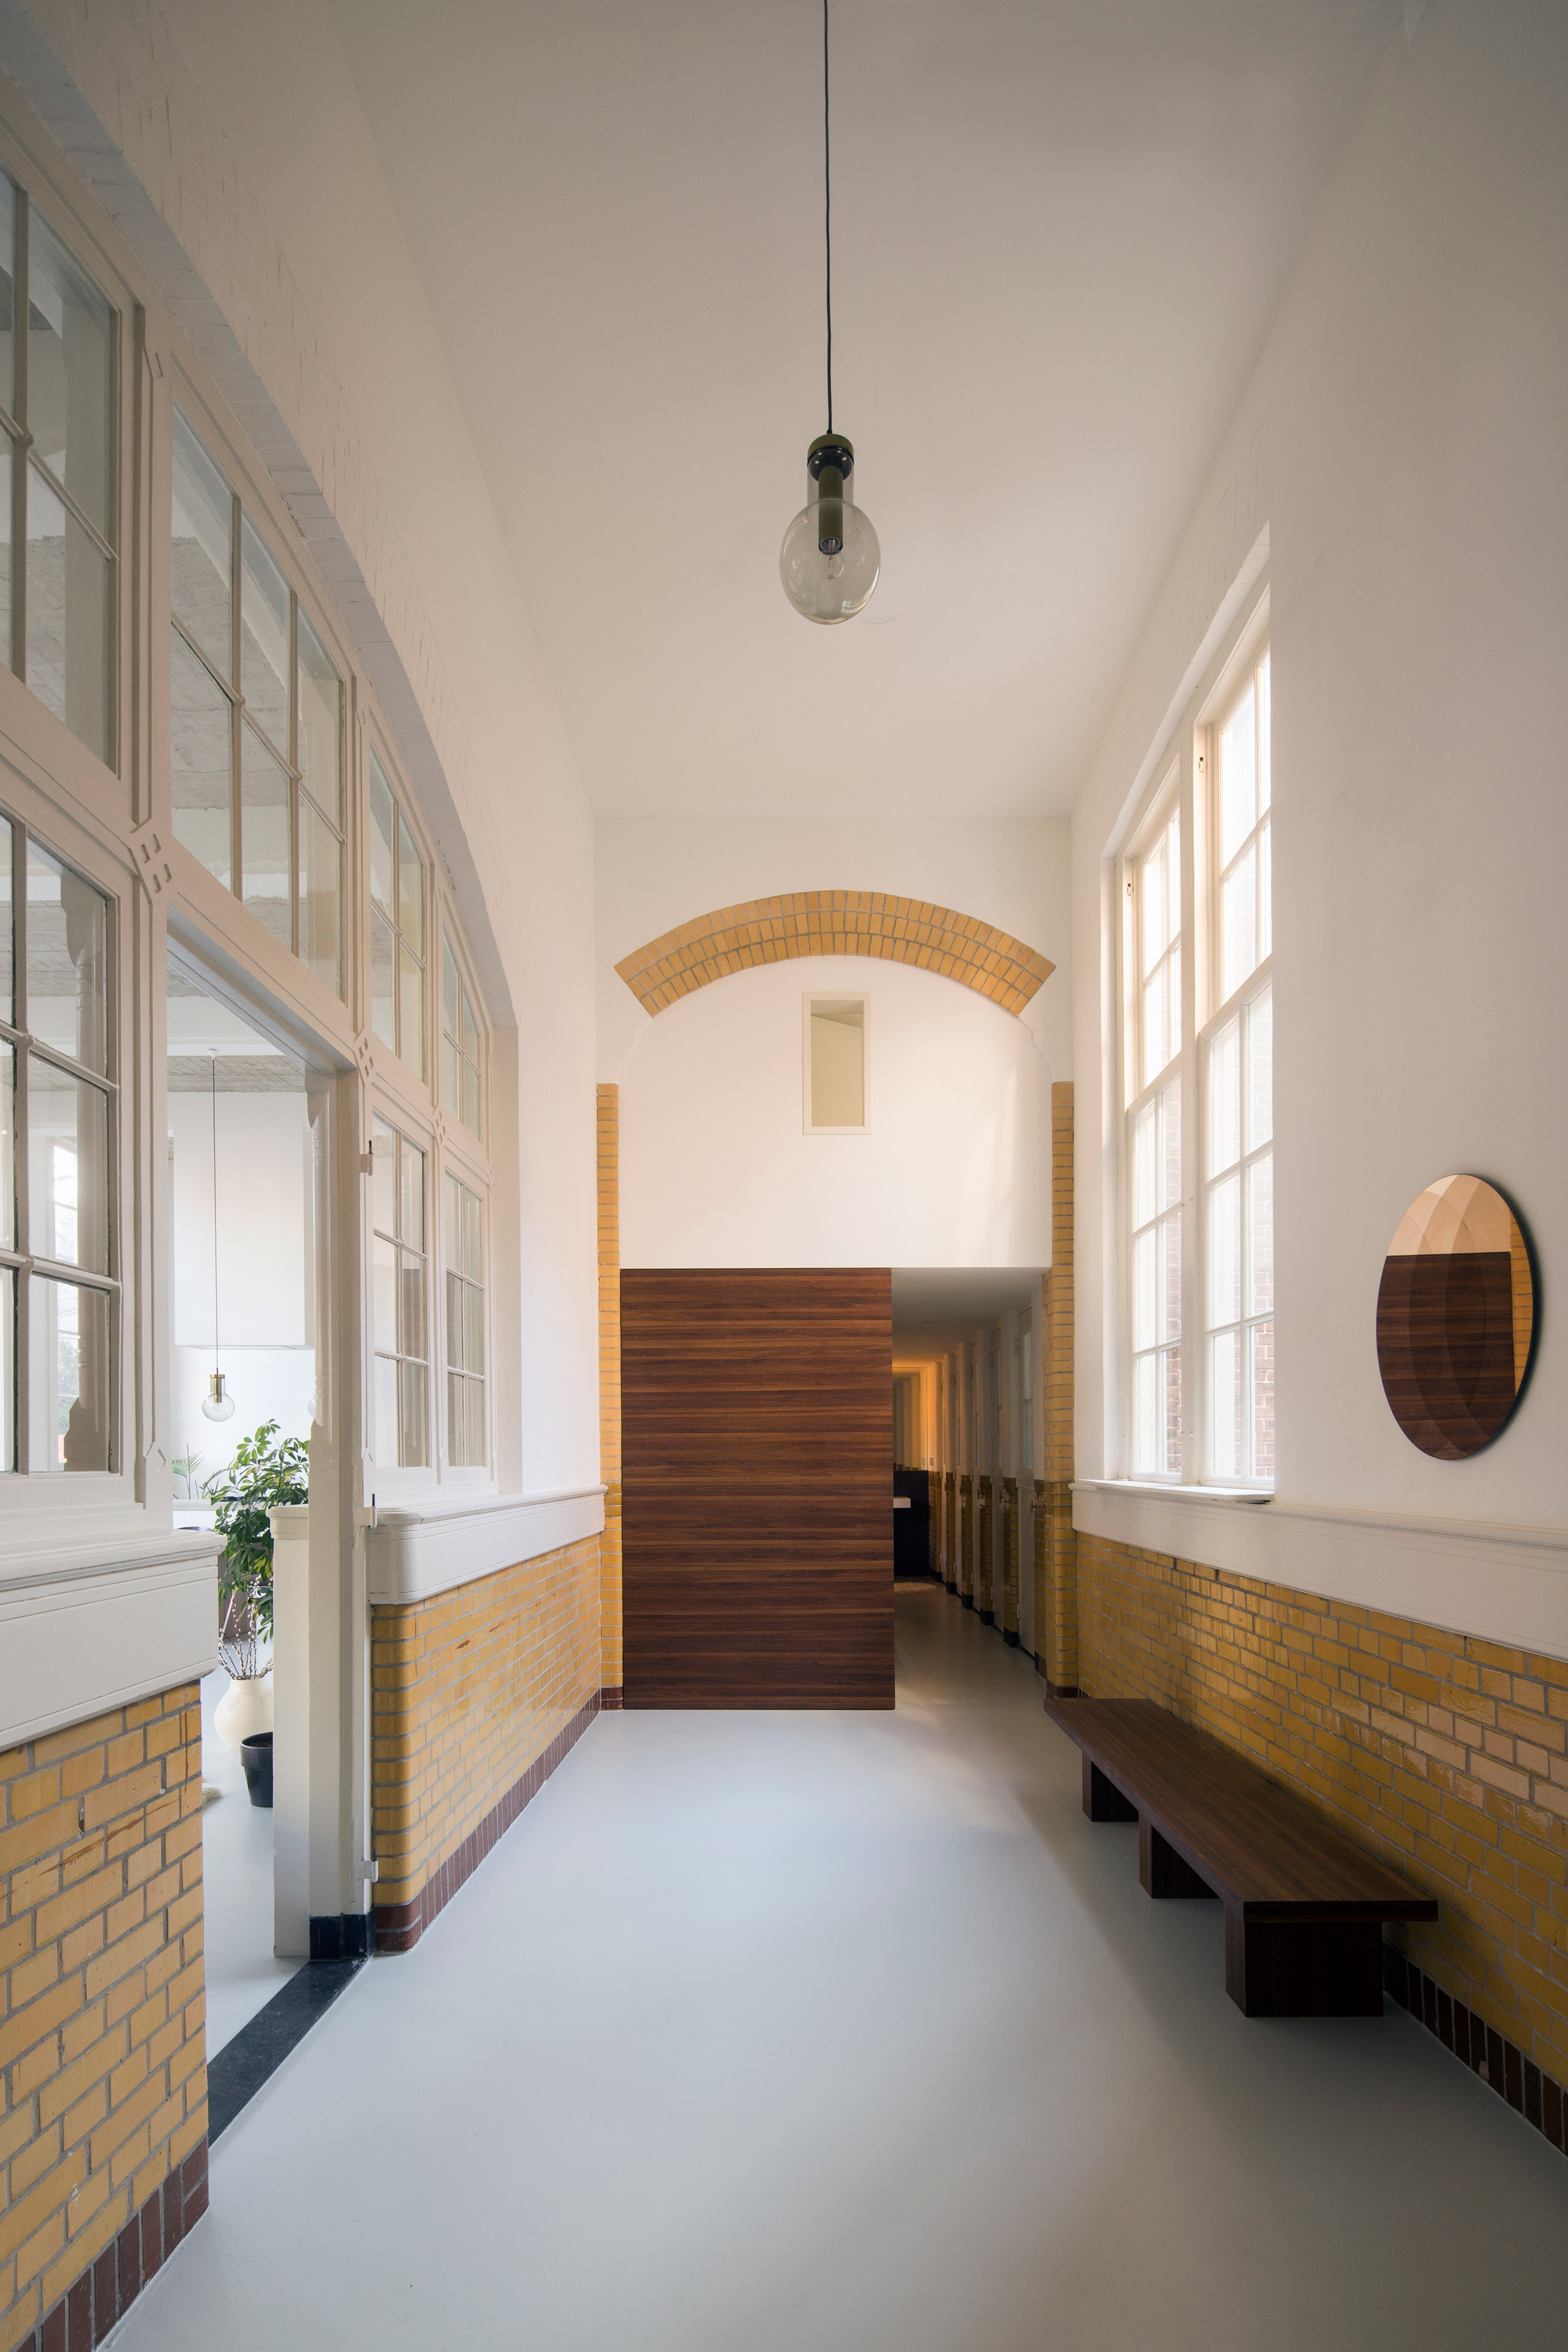 Eklund Terbeek transform 20th-century schoolhouse into light-filled loft apartment